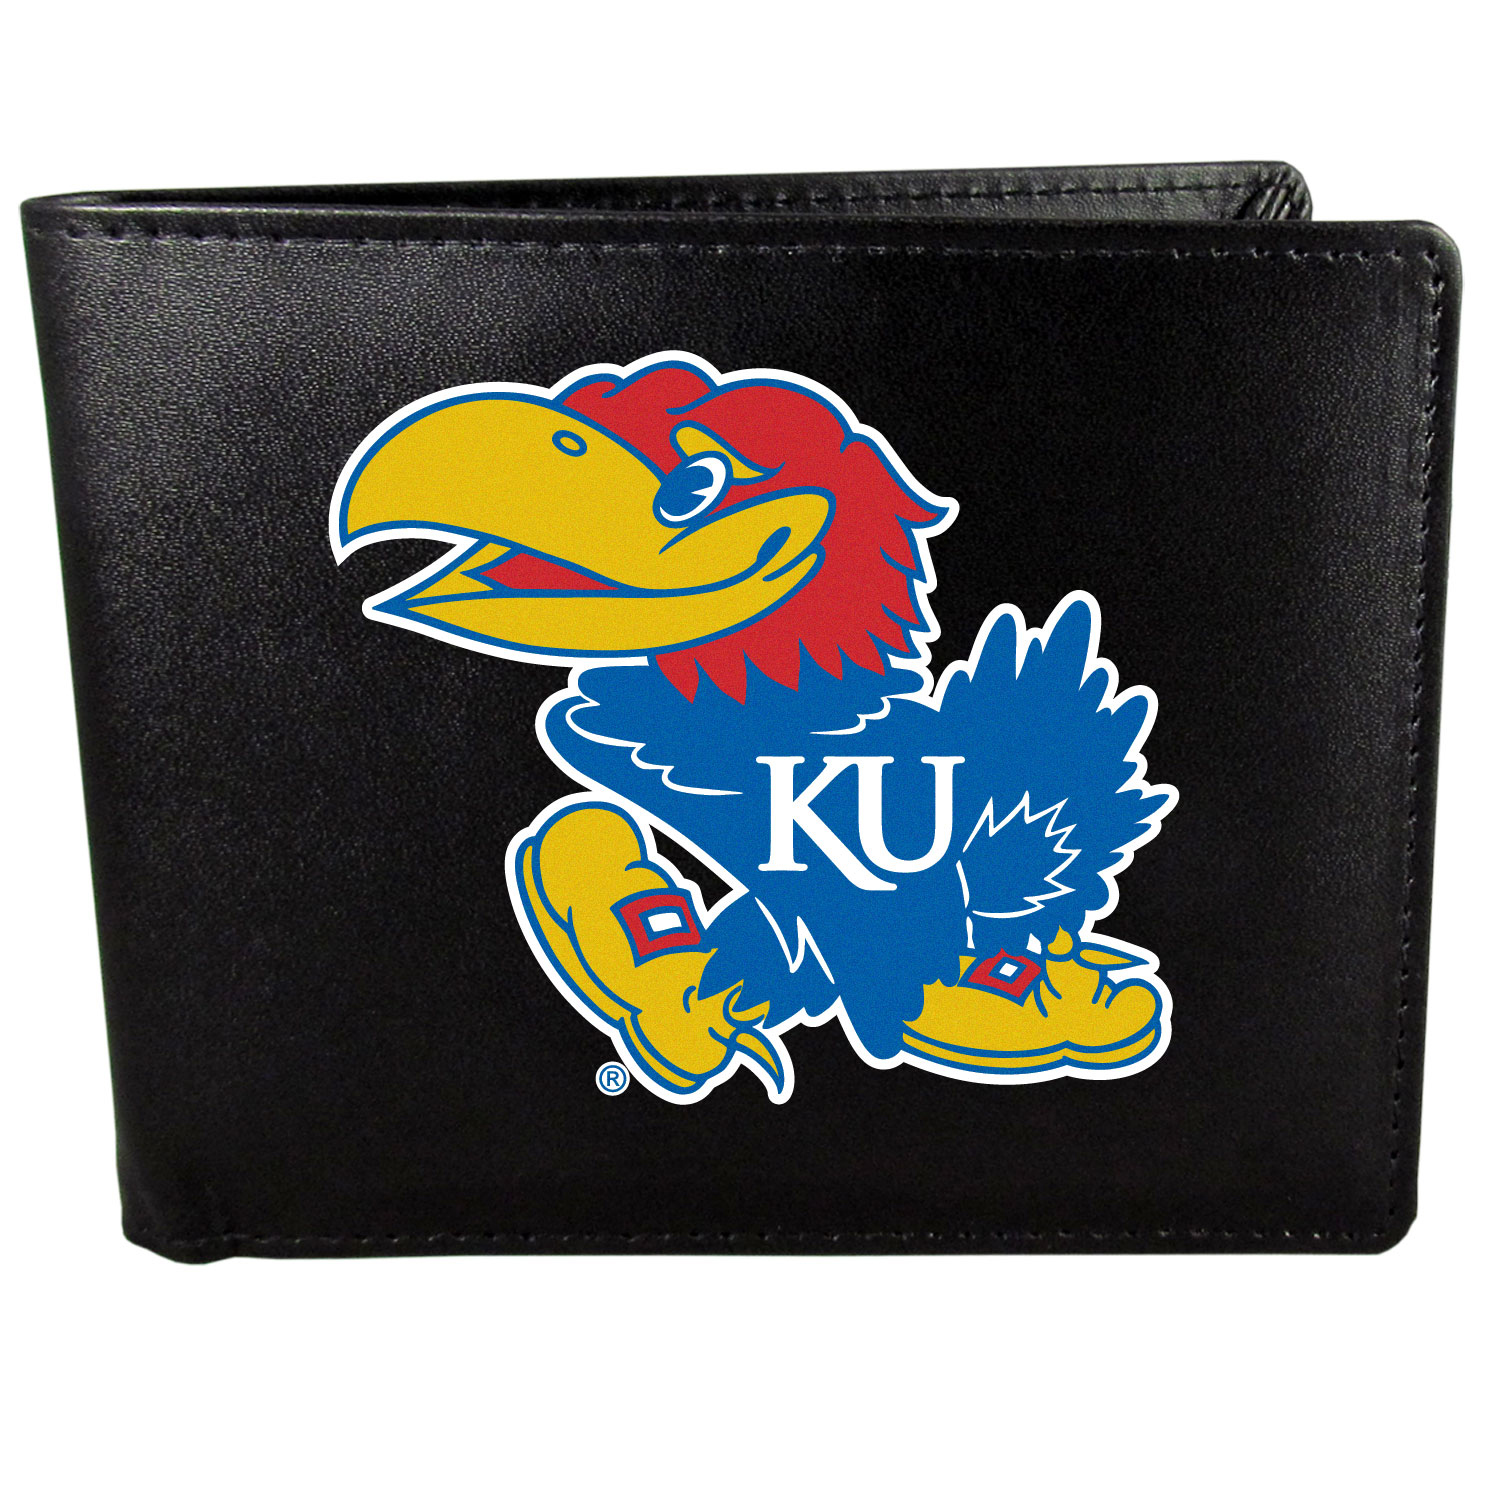 Kansas Jayhawks Leather Bi-fold Wallet, Large Logo - Our classic fine leather bi-fold wallet is meticulously crafted with genuine leather that will age beautifully so you will have a quality wallet for years to come. The wallet opens to a large, billfold pocket and numerous credit card slots and has a convenient windowed ID slot. The front of the wallet features an extra large Kansas Jayhawks printed logo.